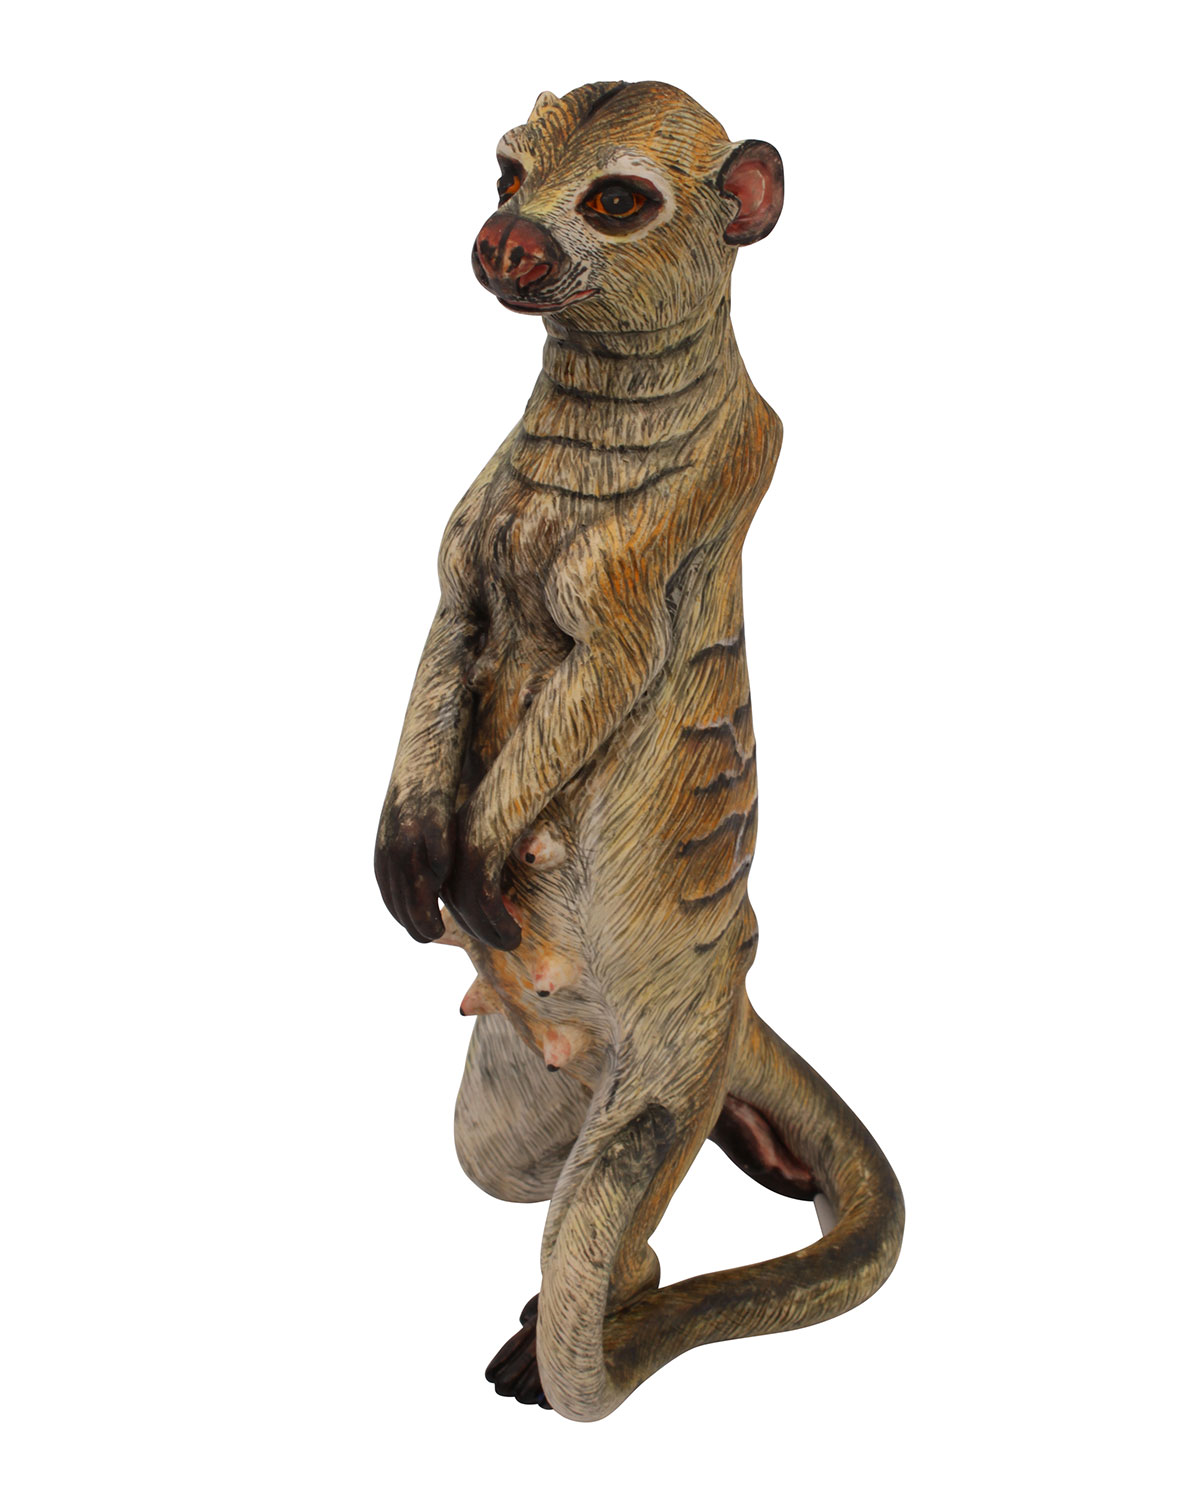 Ardmore Ceramic Art Meerkat Sculpture